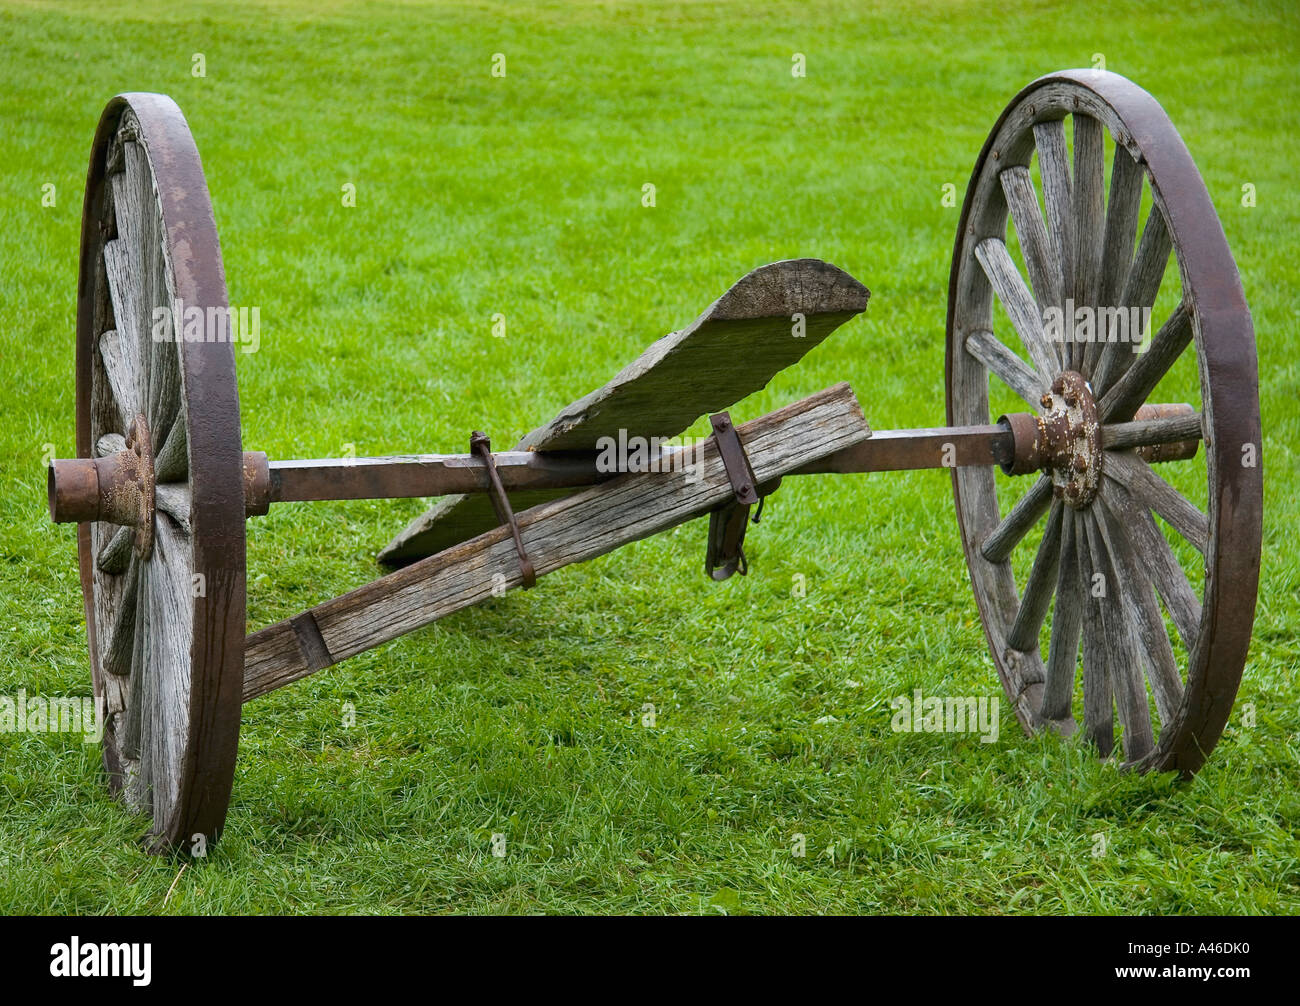 Broken Axle Stockfotos & Broken Axle Bilder - Seite 2 - Alamy